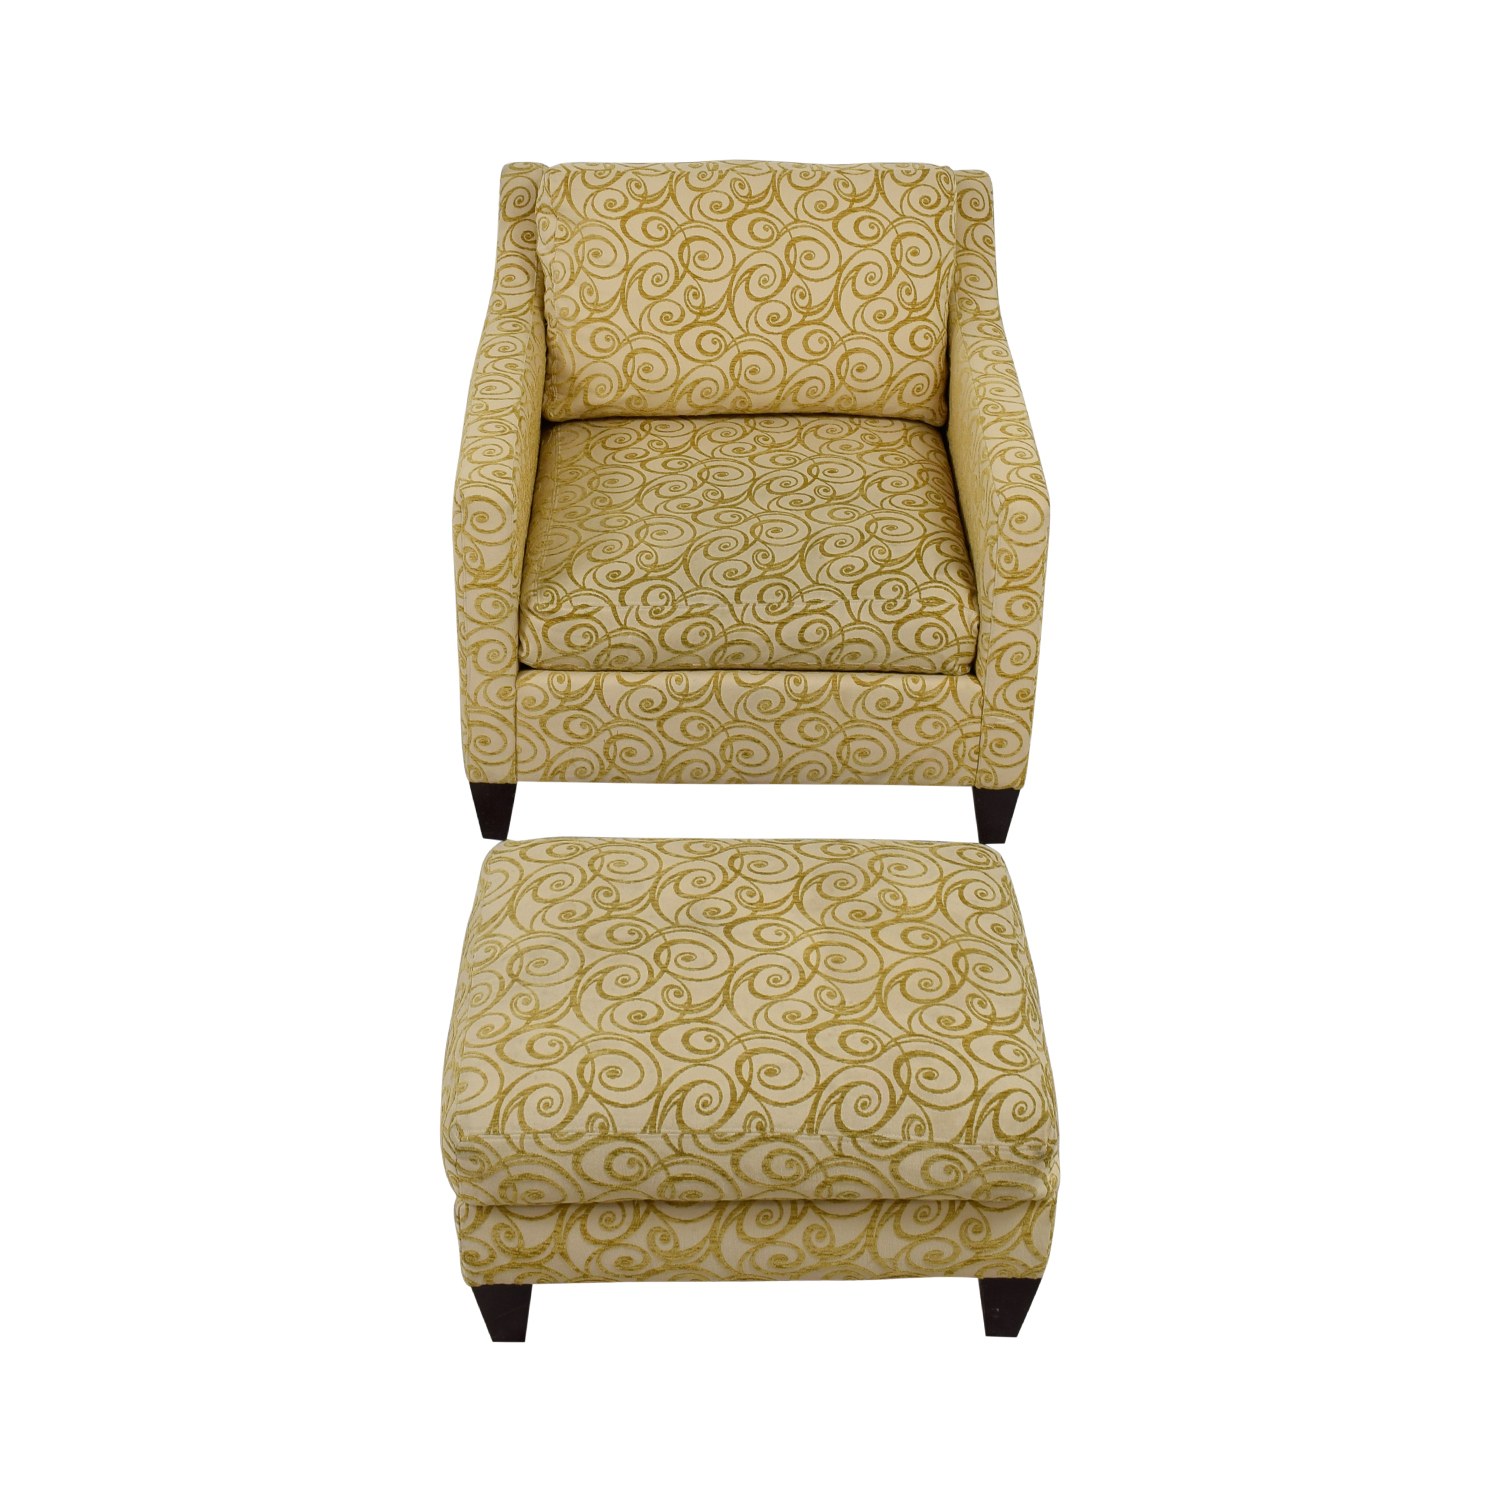 Ethan Allen Ethan Allen Beige and Gold Monterey Chair and Ottoman Accent Chairs